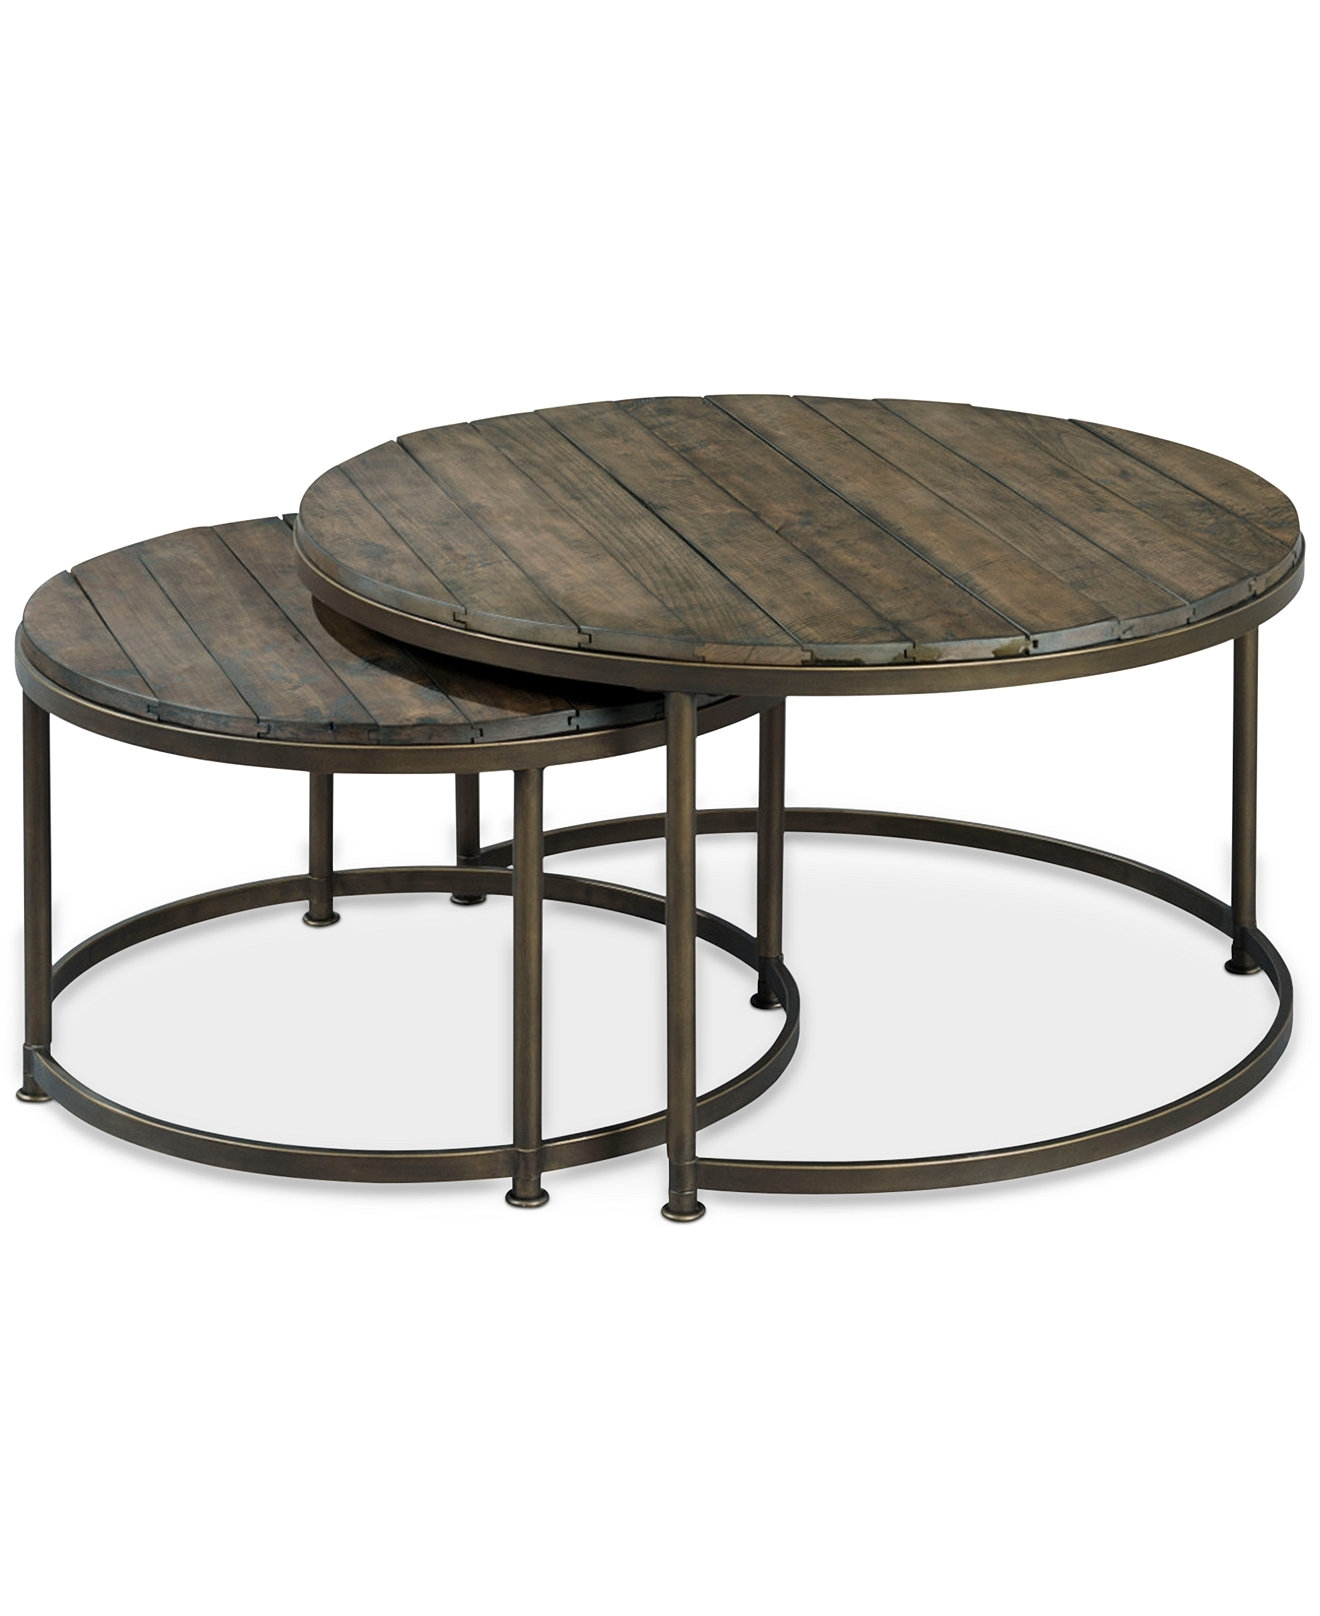 Coffee Table: Contemporary Nesting Coffee Table Round Round Coffee Intended For Famous Set Of Nesting Coffee Tables (View 17 of 20)